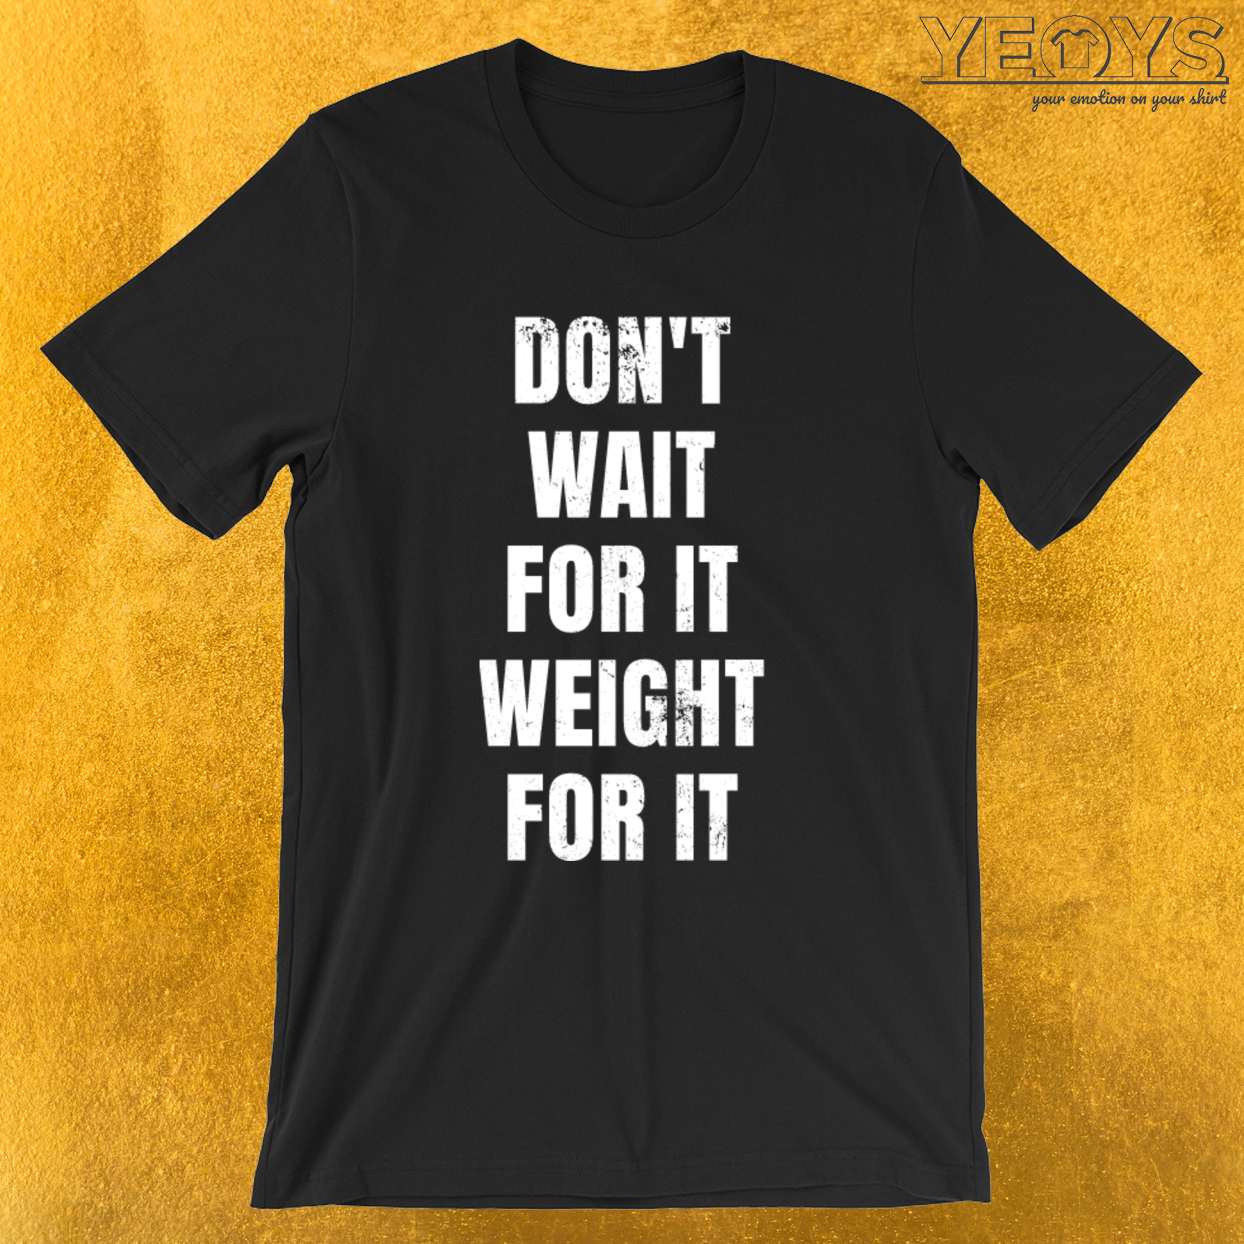 Don't Wait For It Weight for It – Weightlifting Tee